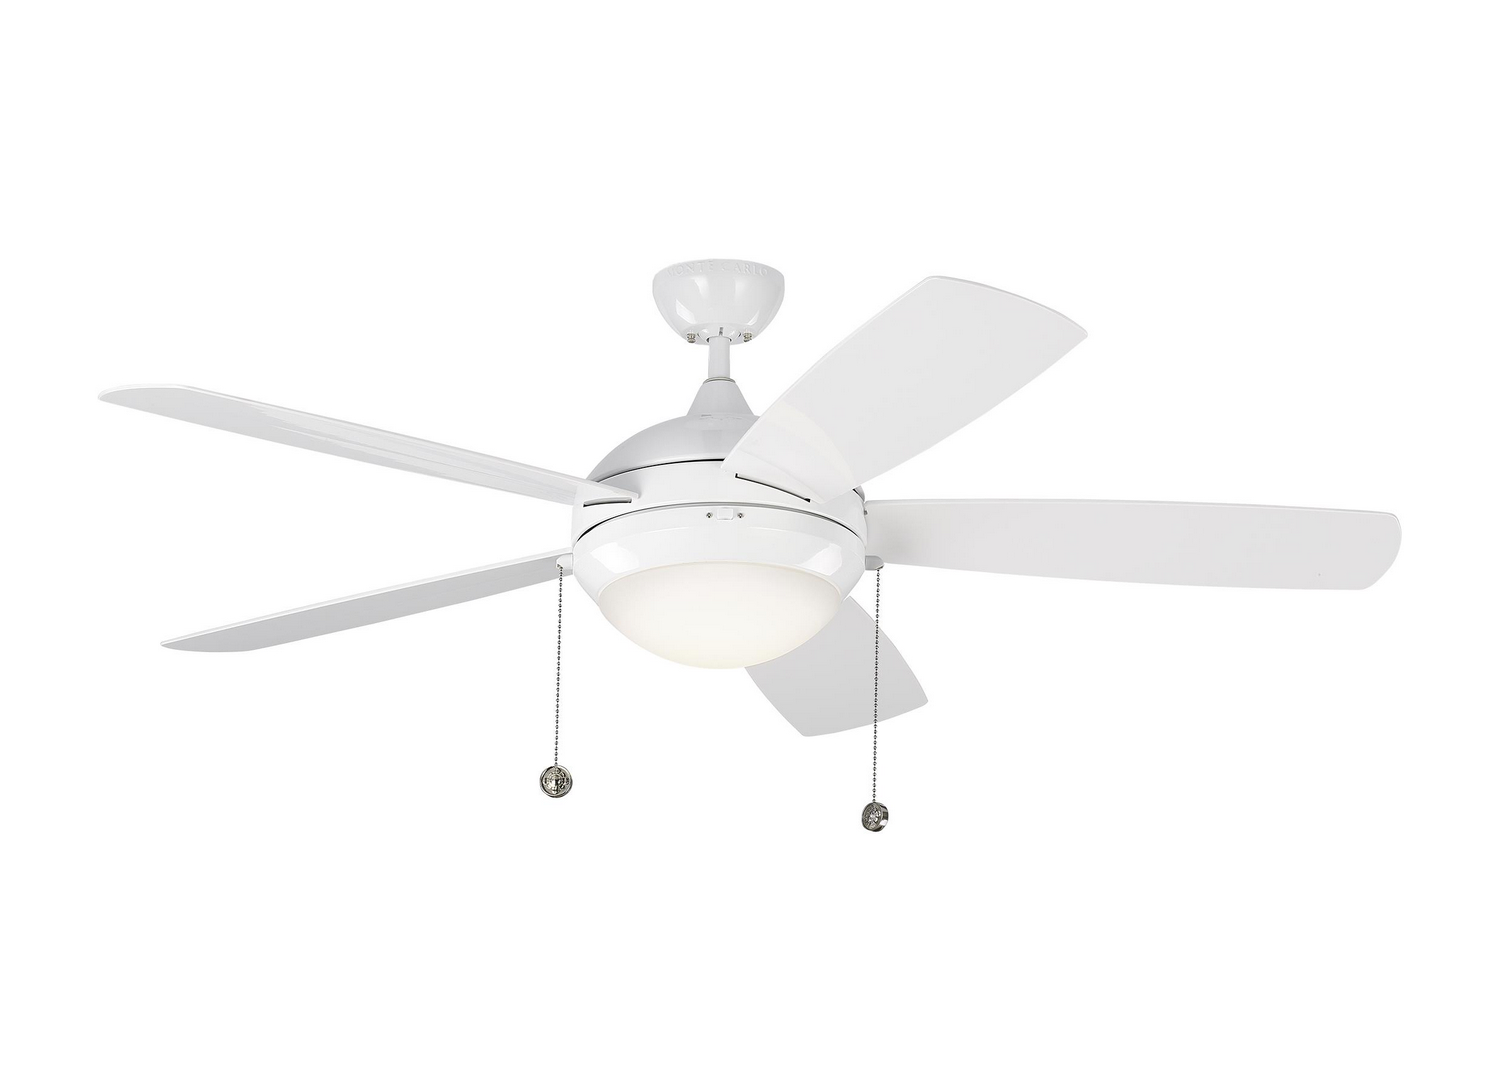 52 inchCeiling Fan from the Discus Outdoor collection by Monte Carlo 5DIW52WHD